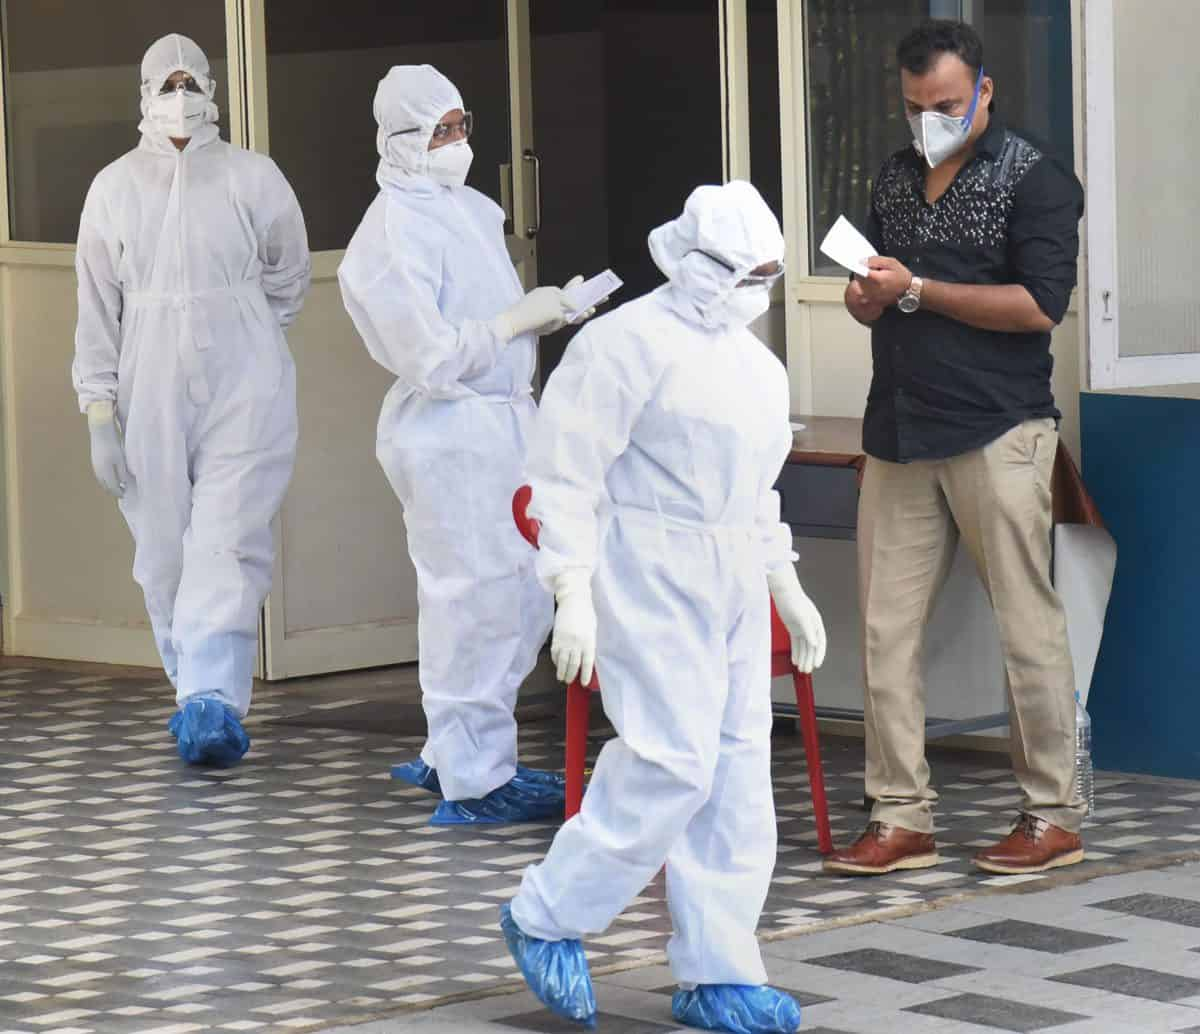 Medical officials take steps to contain spread of Coronavirus